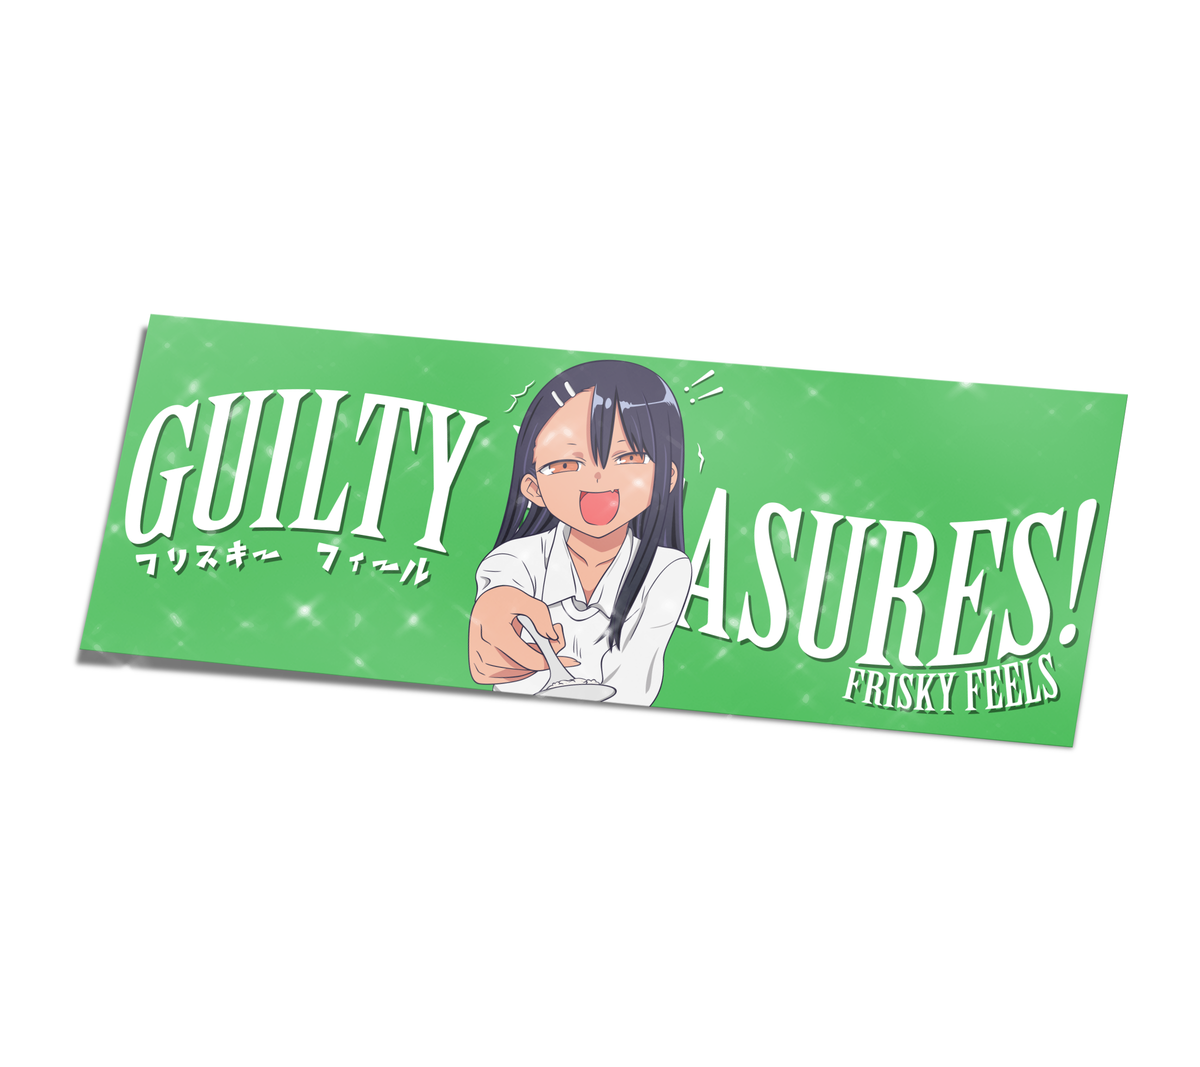 Image of Guilty Pleasures v2